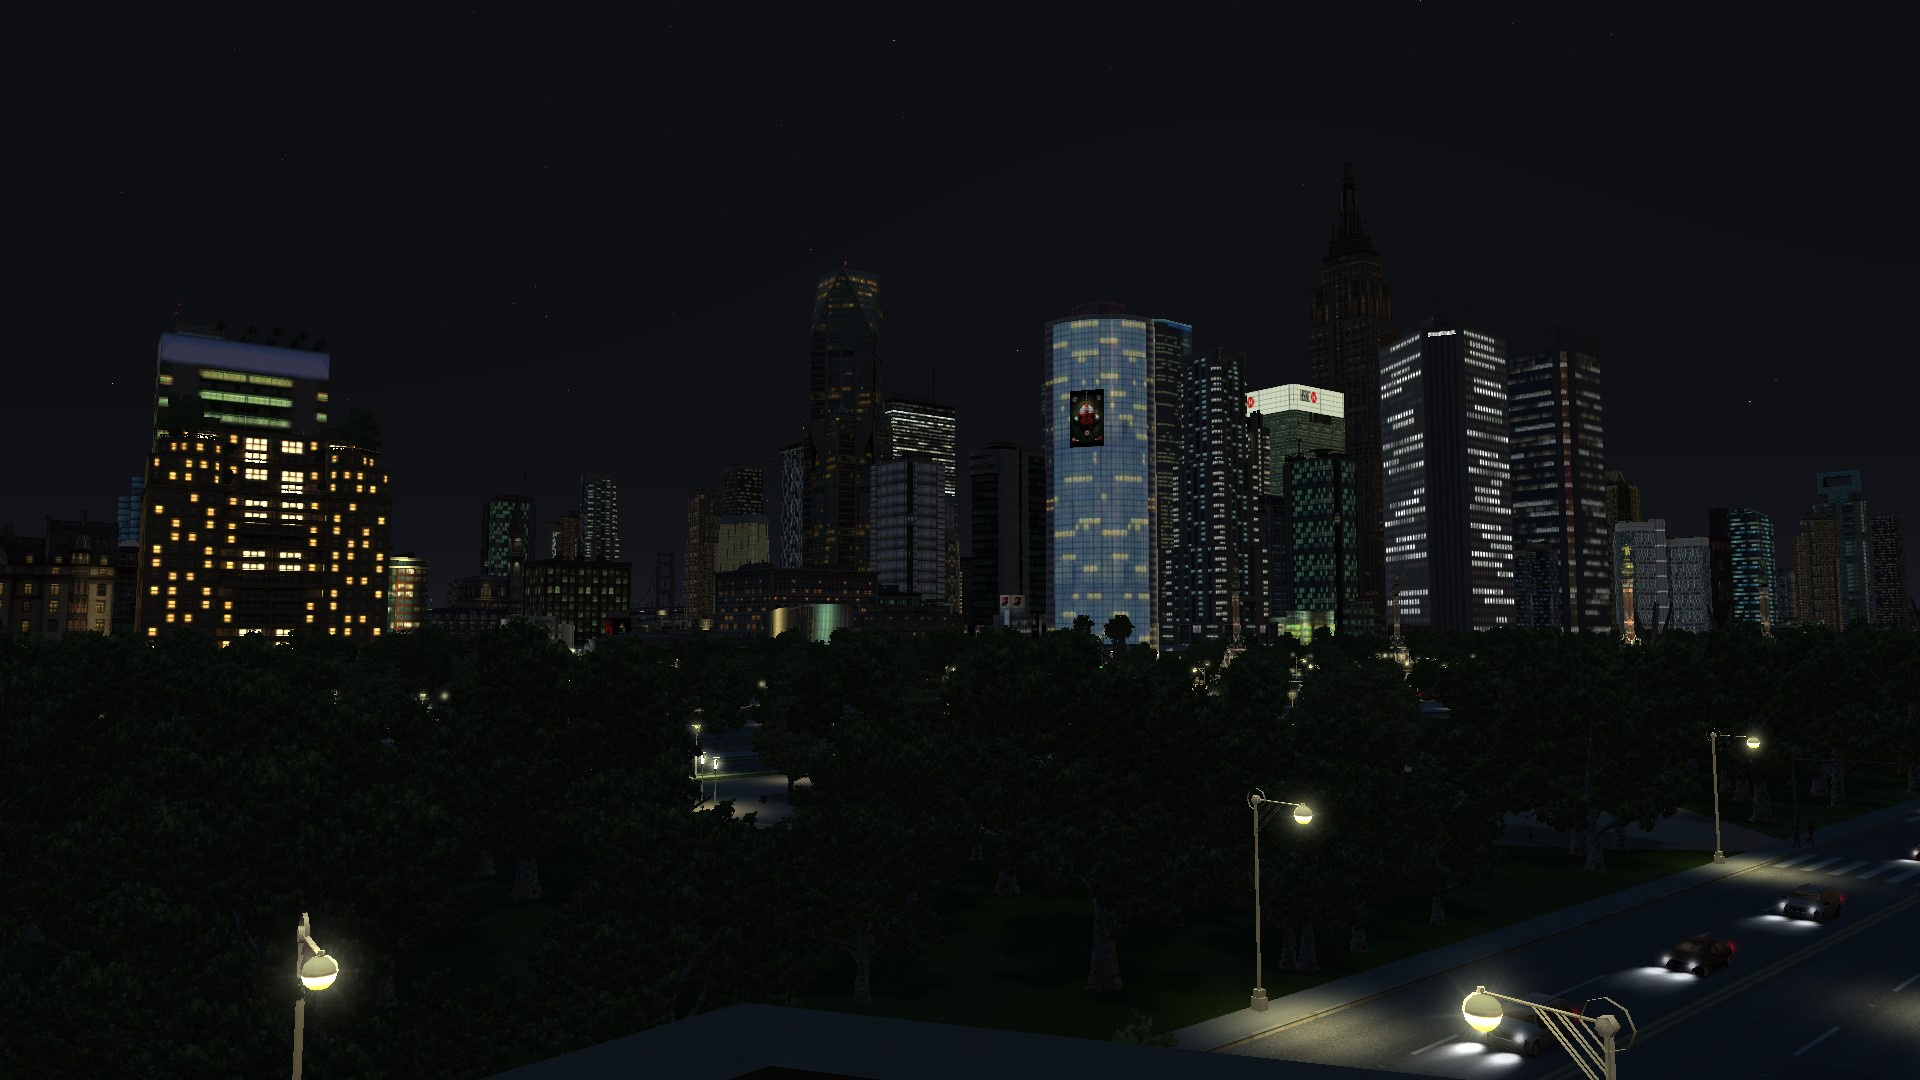 cxl_screenshot_liberty city_43.jpg